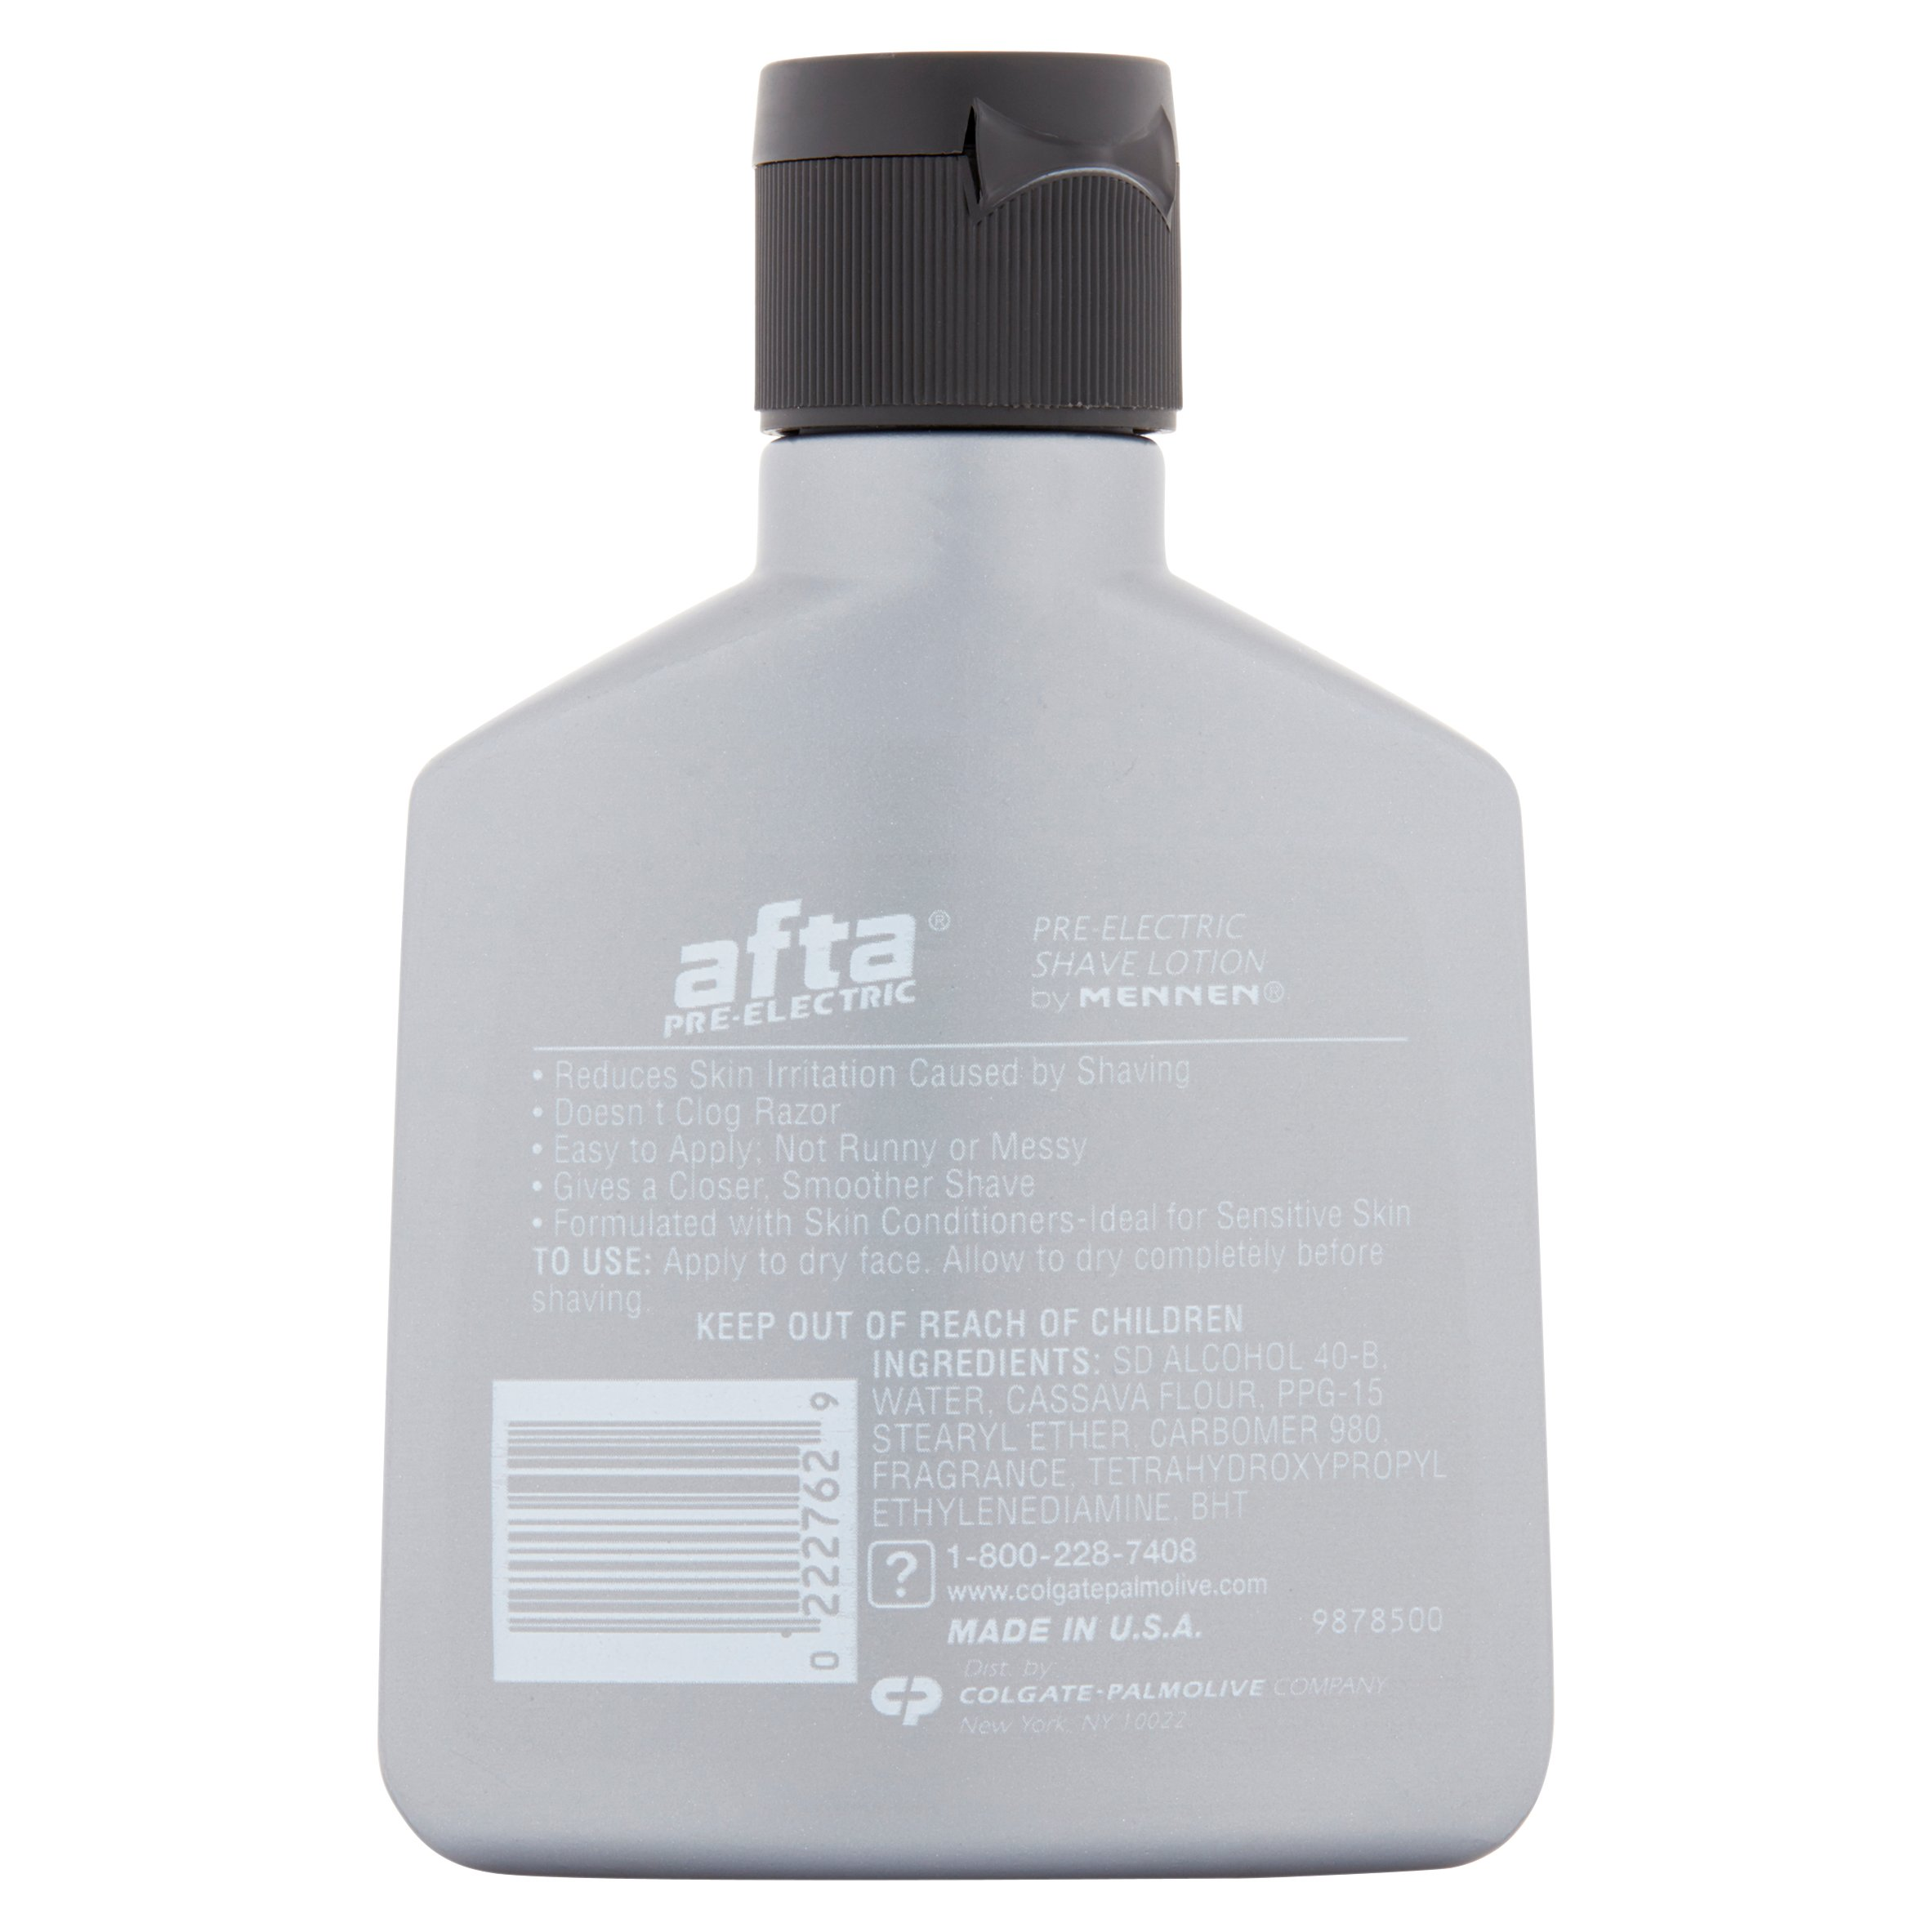 Afta Pre Electric After Shave Lotion With Skin Conditioners 3 Oz